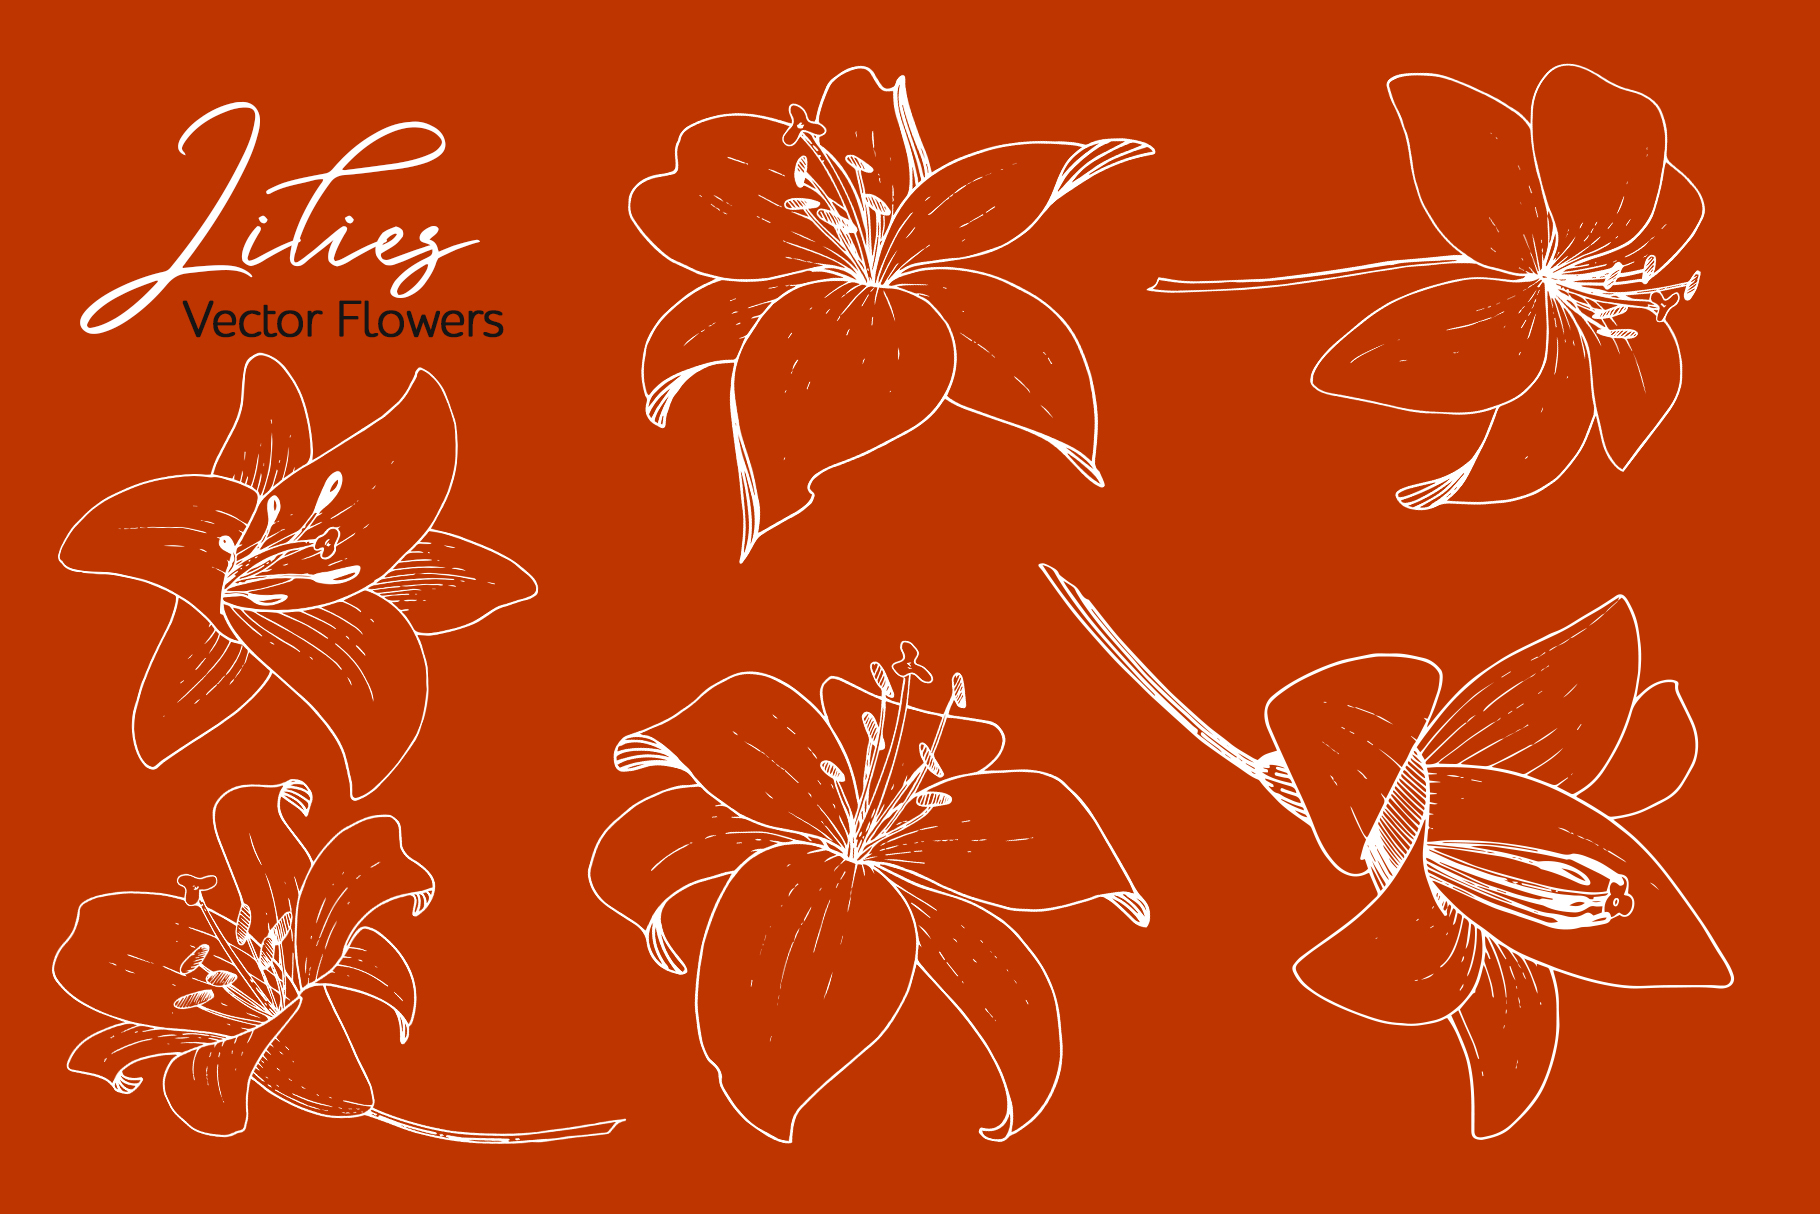 Lilies Vector Collection example image 2